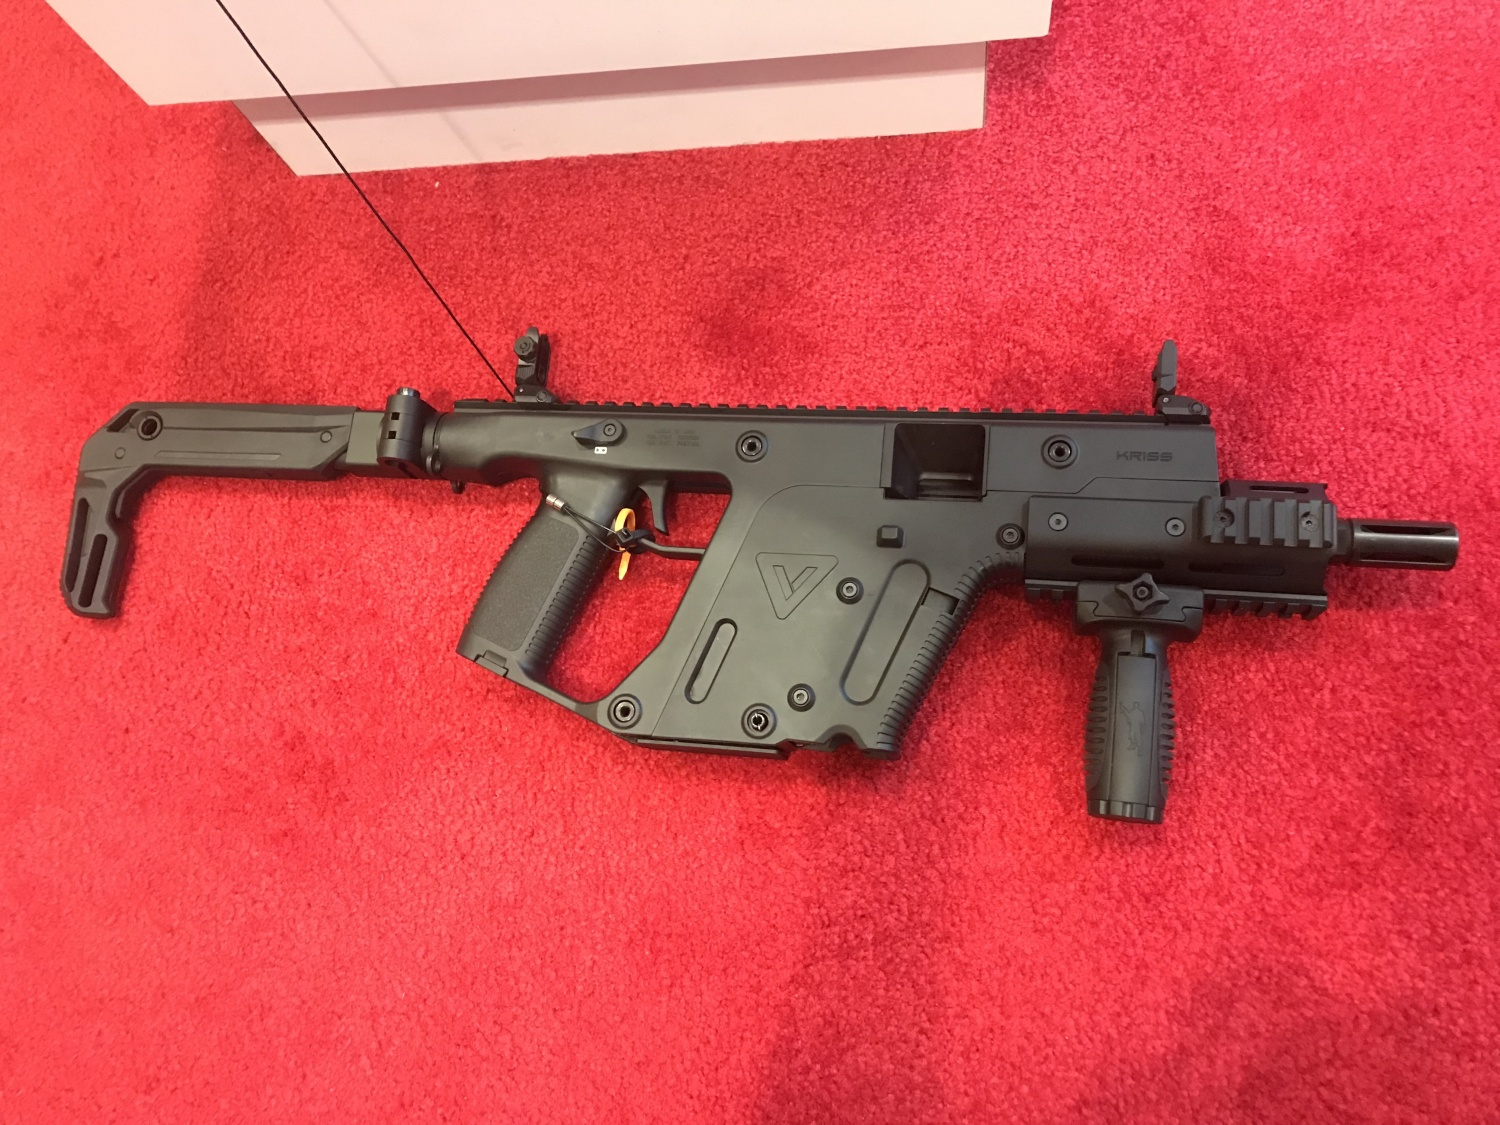 SHOT 2018] KRISS USA's Latest Products for 2018 -The Firearm